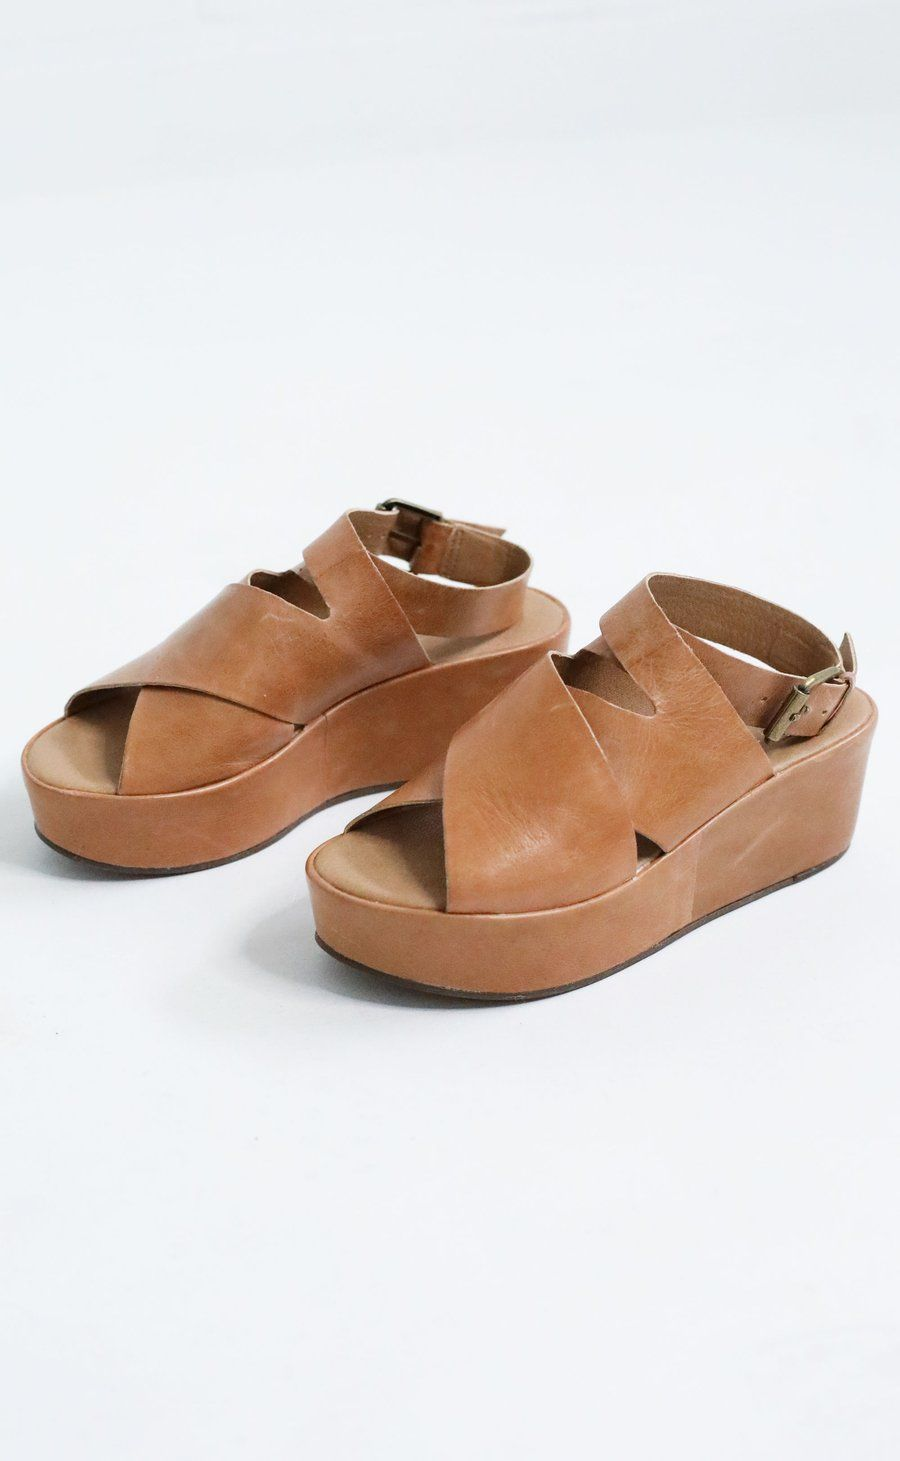 279681aedf9 Amuse Society x Matisse platform sandal. These are gonna be your new  favorite shoes ever